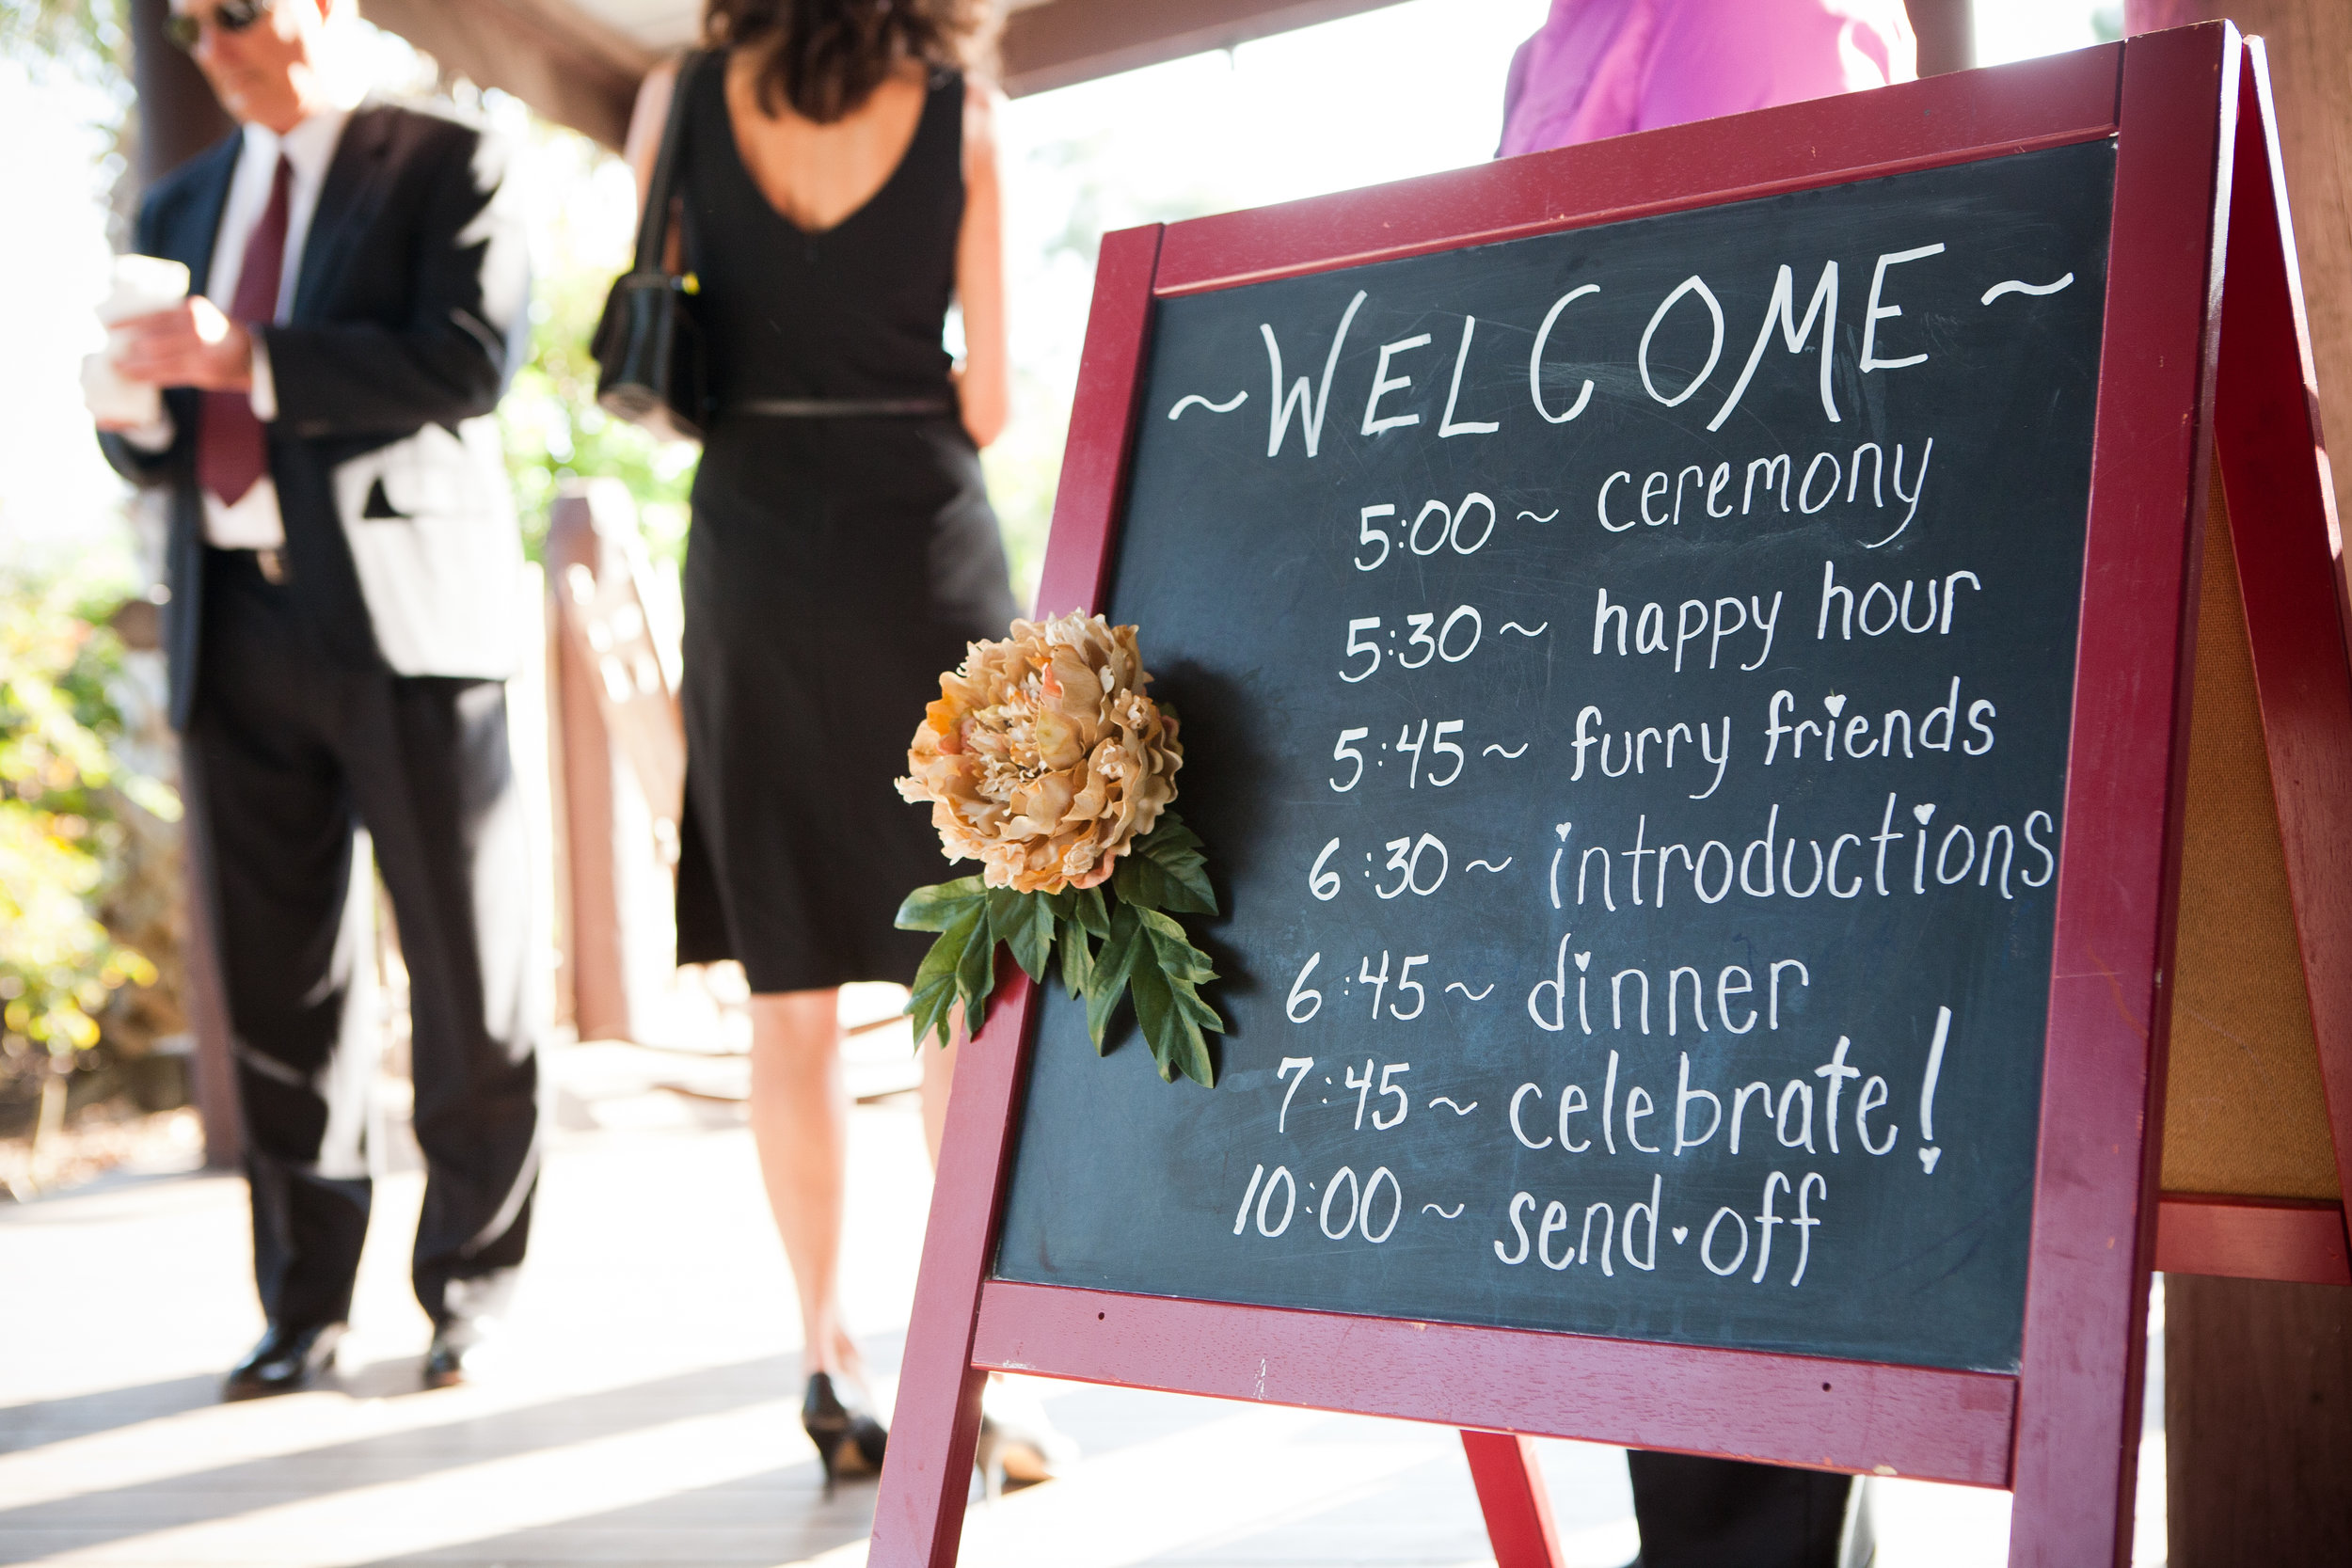 Brevard-Zo-wedding-Melbourne-florida-8.jpg